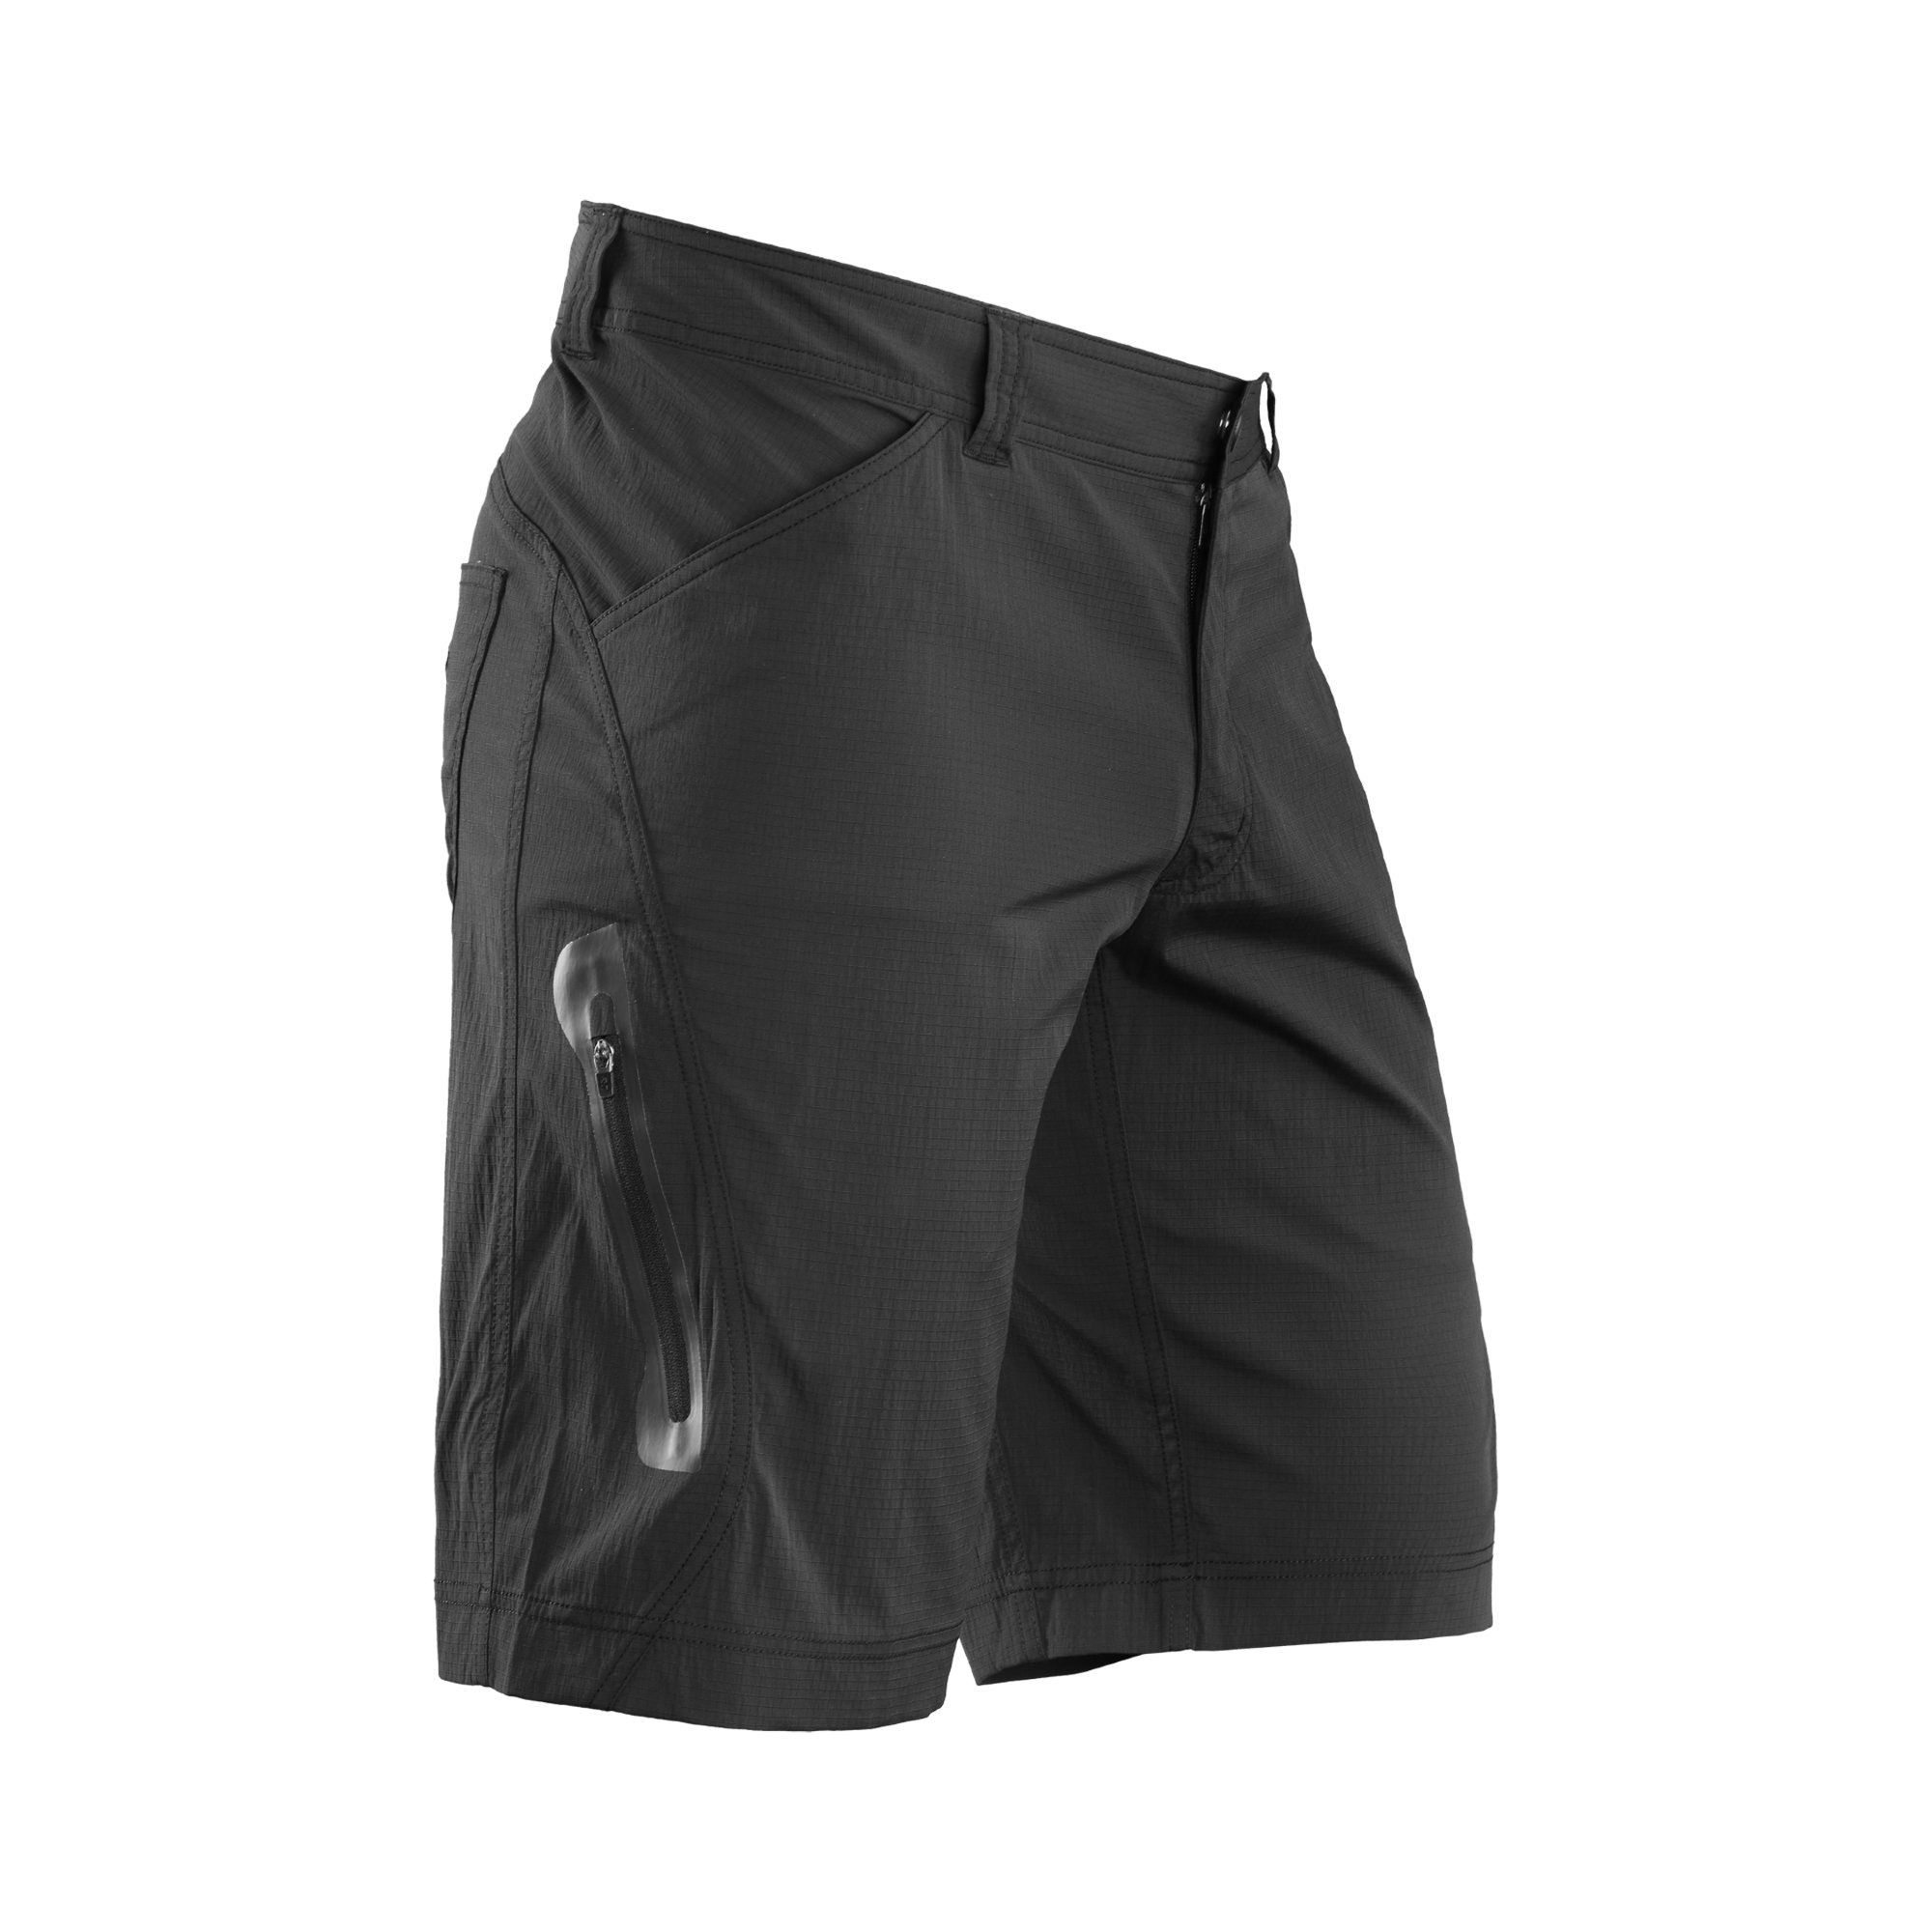 thumbnail 9 - NEW-Kathmandu-Aklo-Men-039-s-Walking-Hiking-Travel-Shorts-Pants-UPF-50-Protection